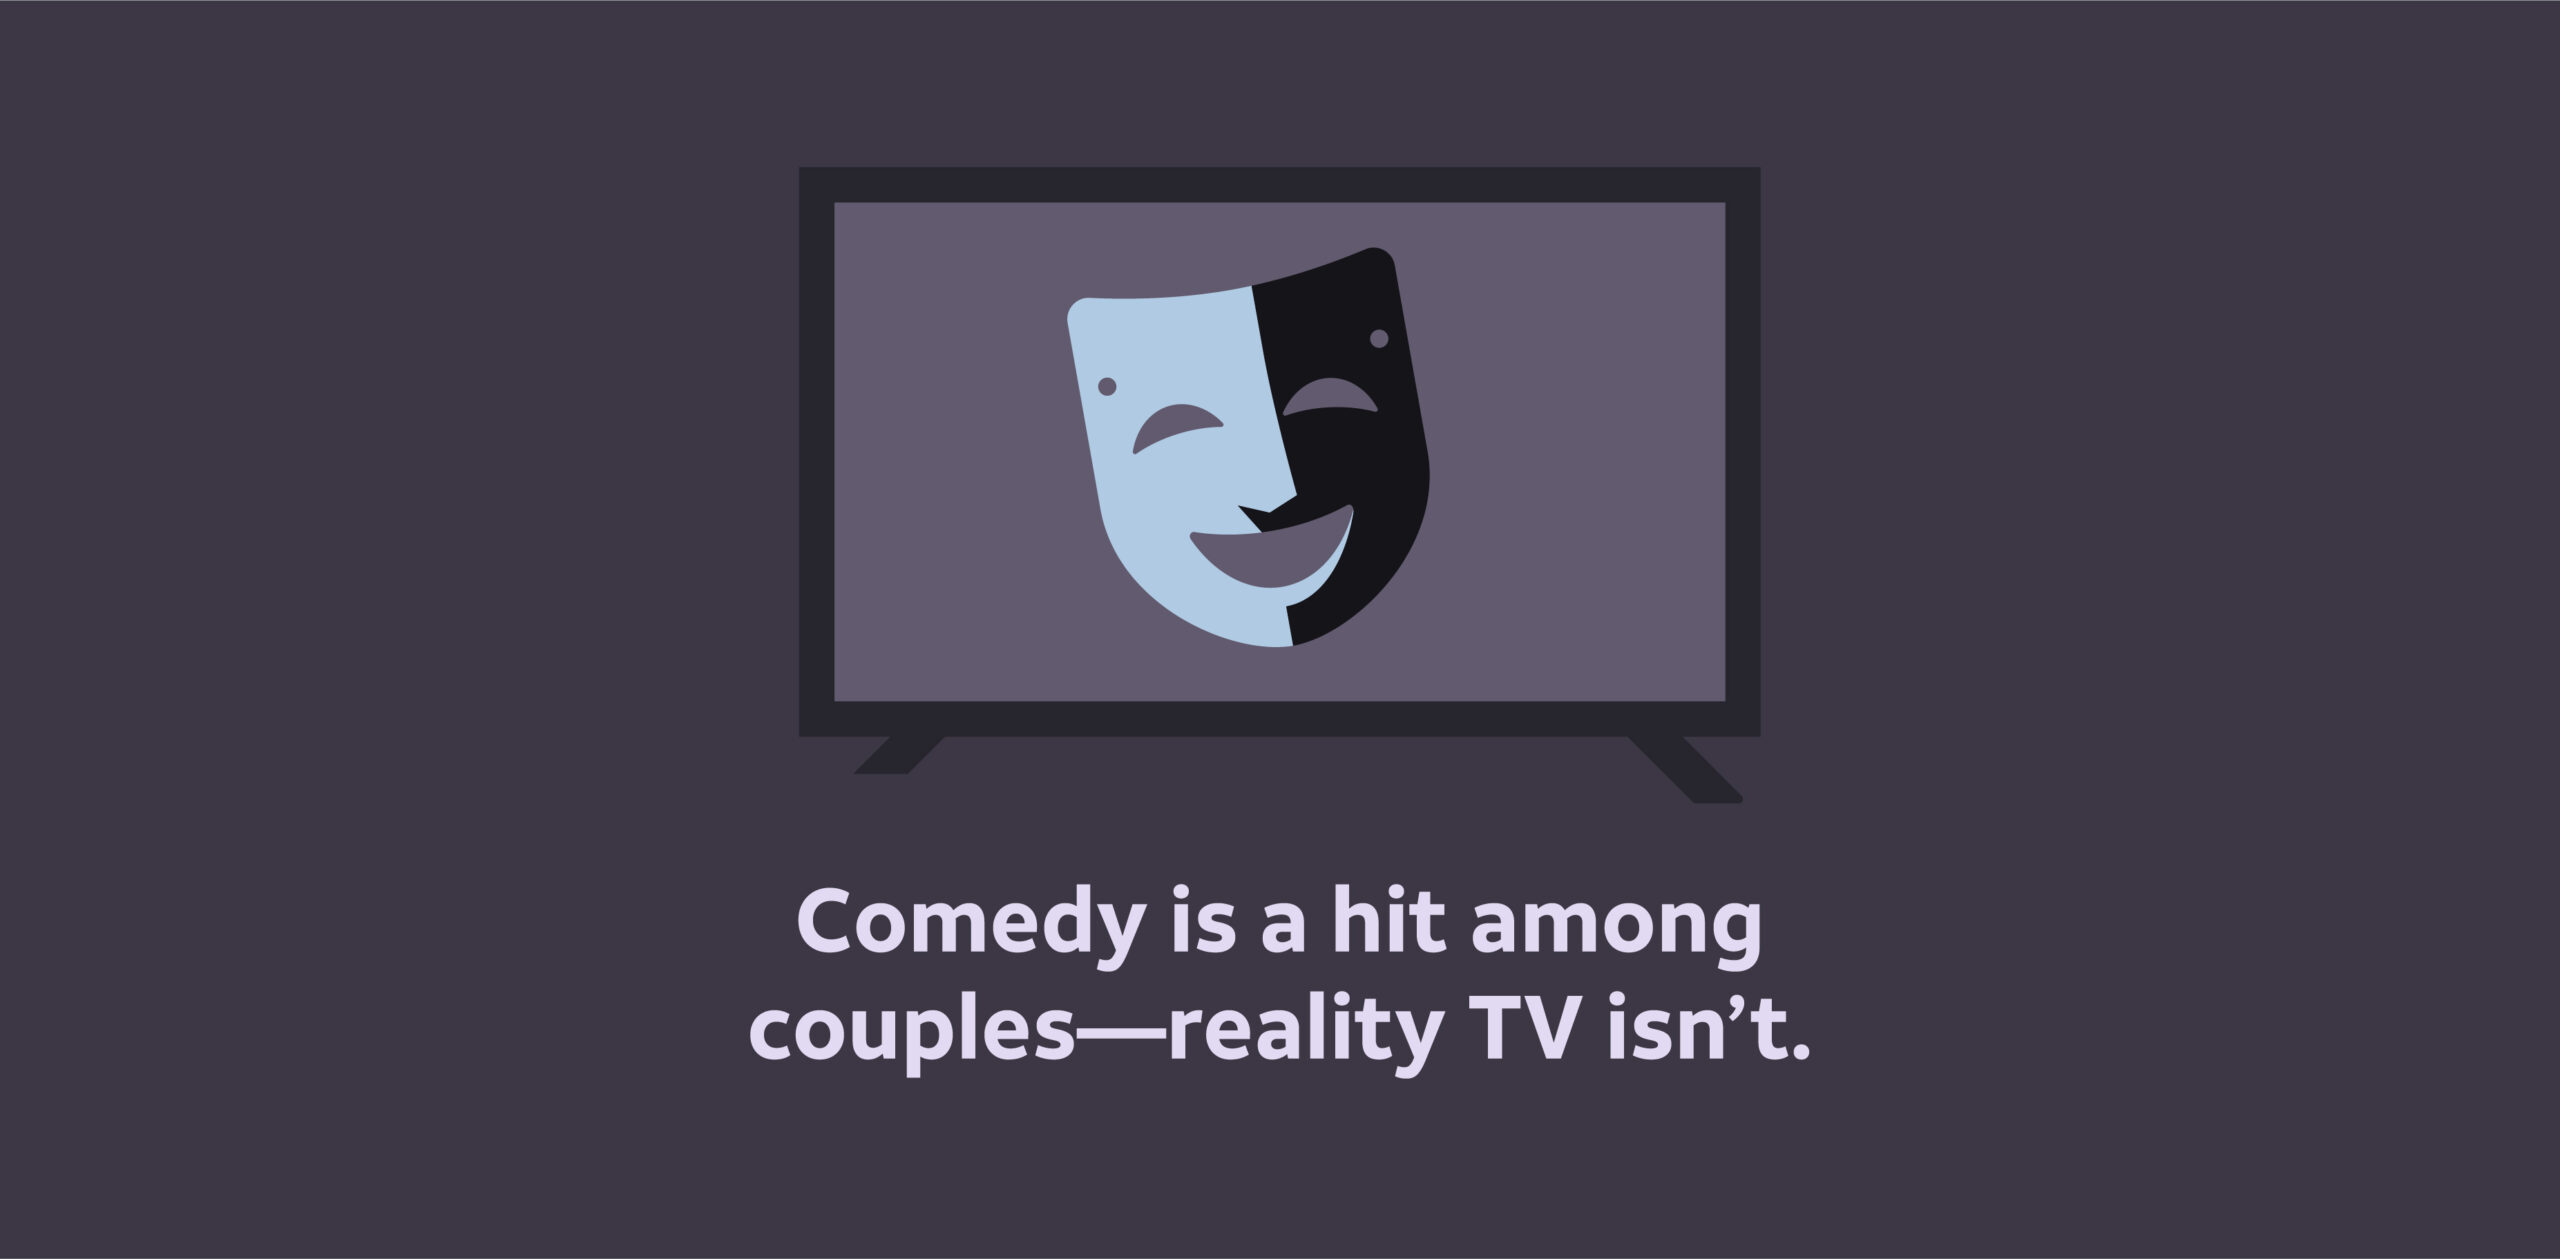 Comedy is a hit among couples—reality TV isn't.